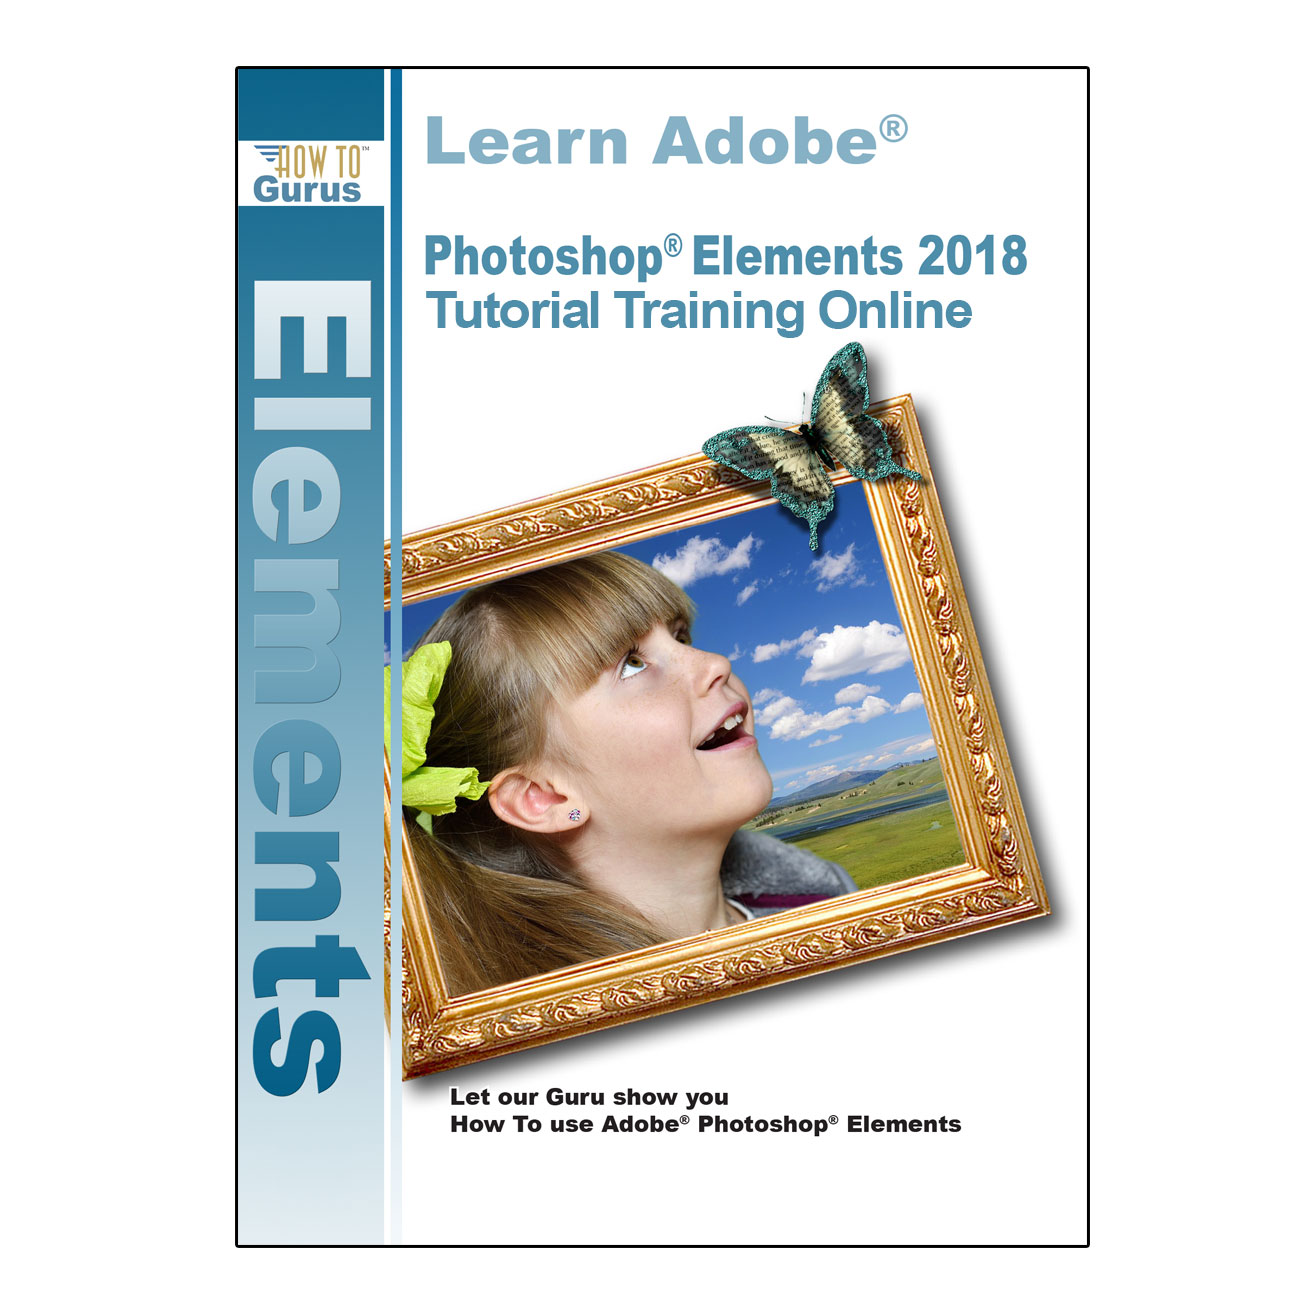 Adobe photoshop elements 2018 tutorials online how to gurus baditri Images